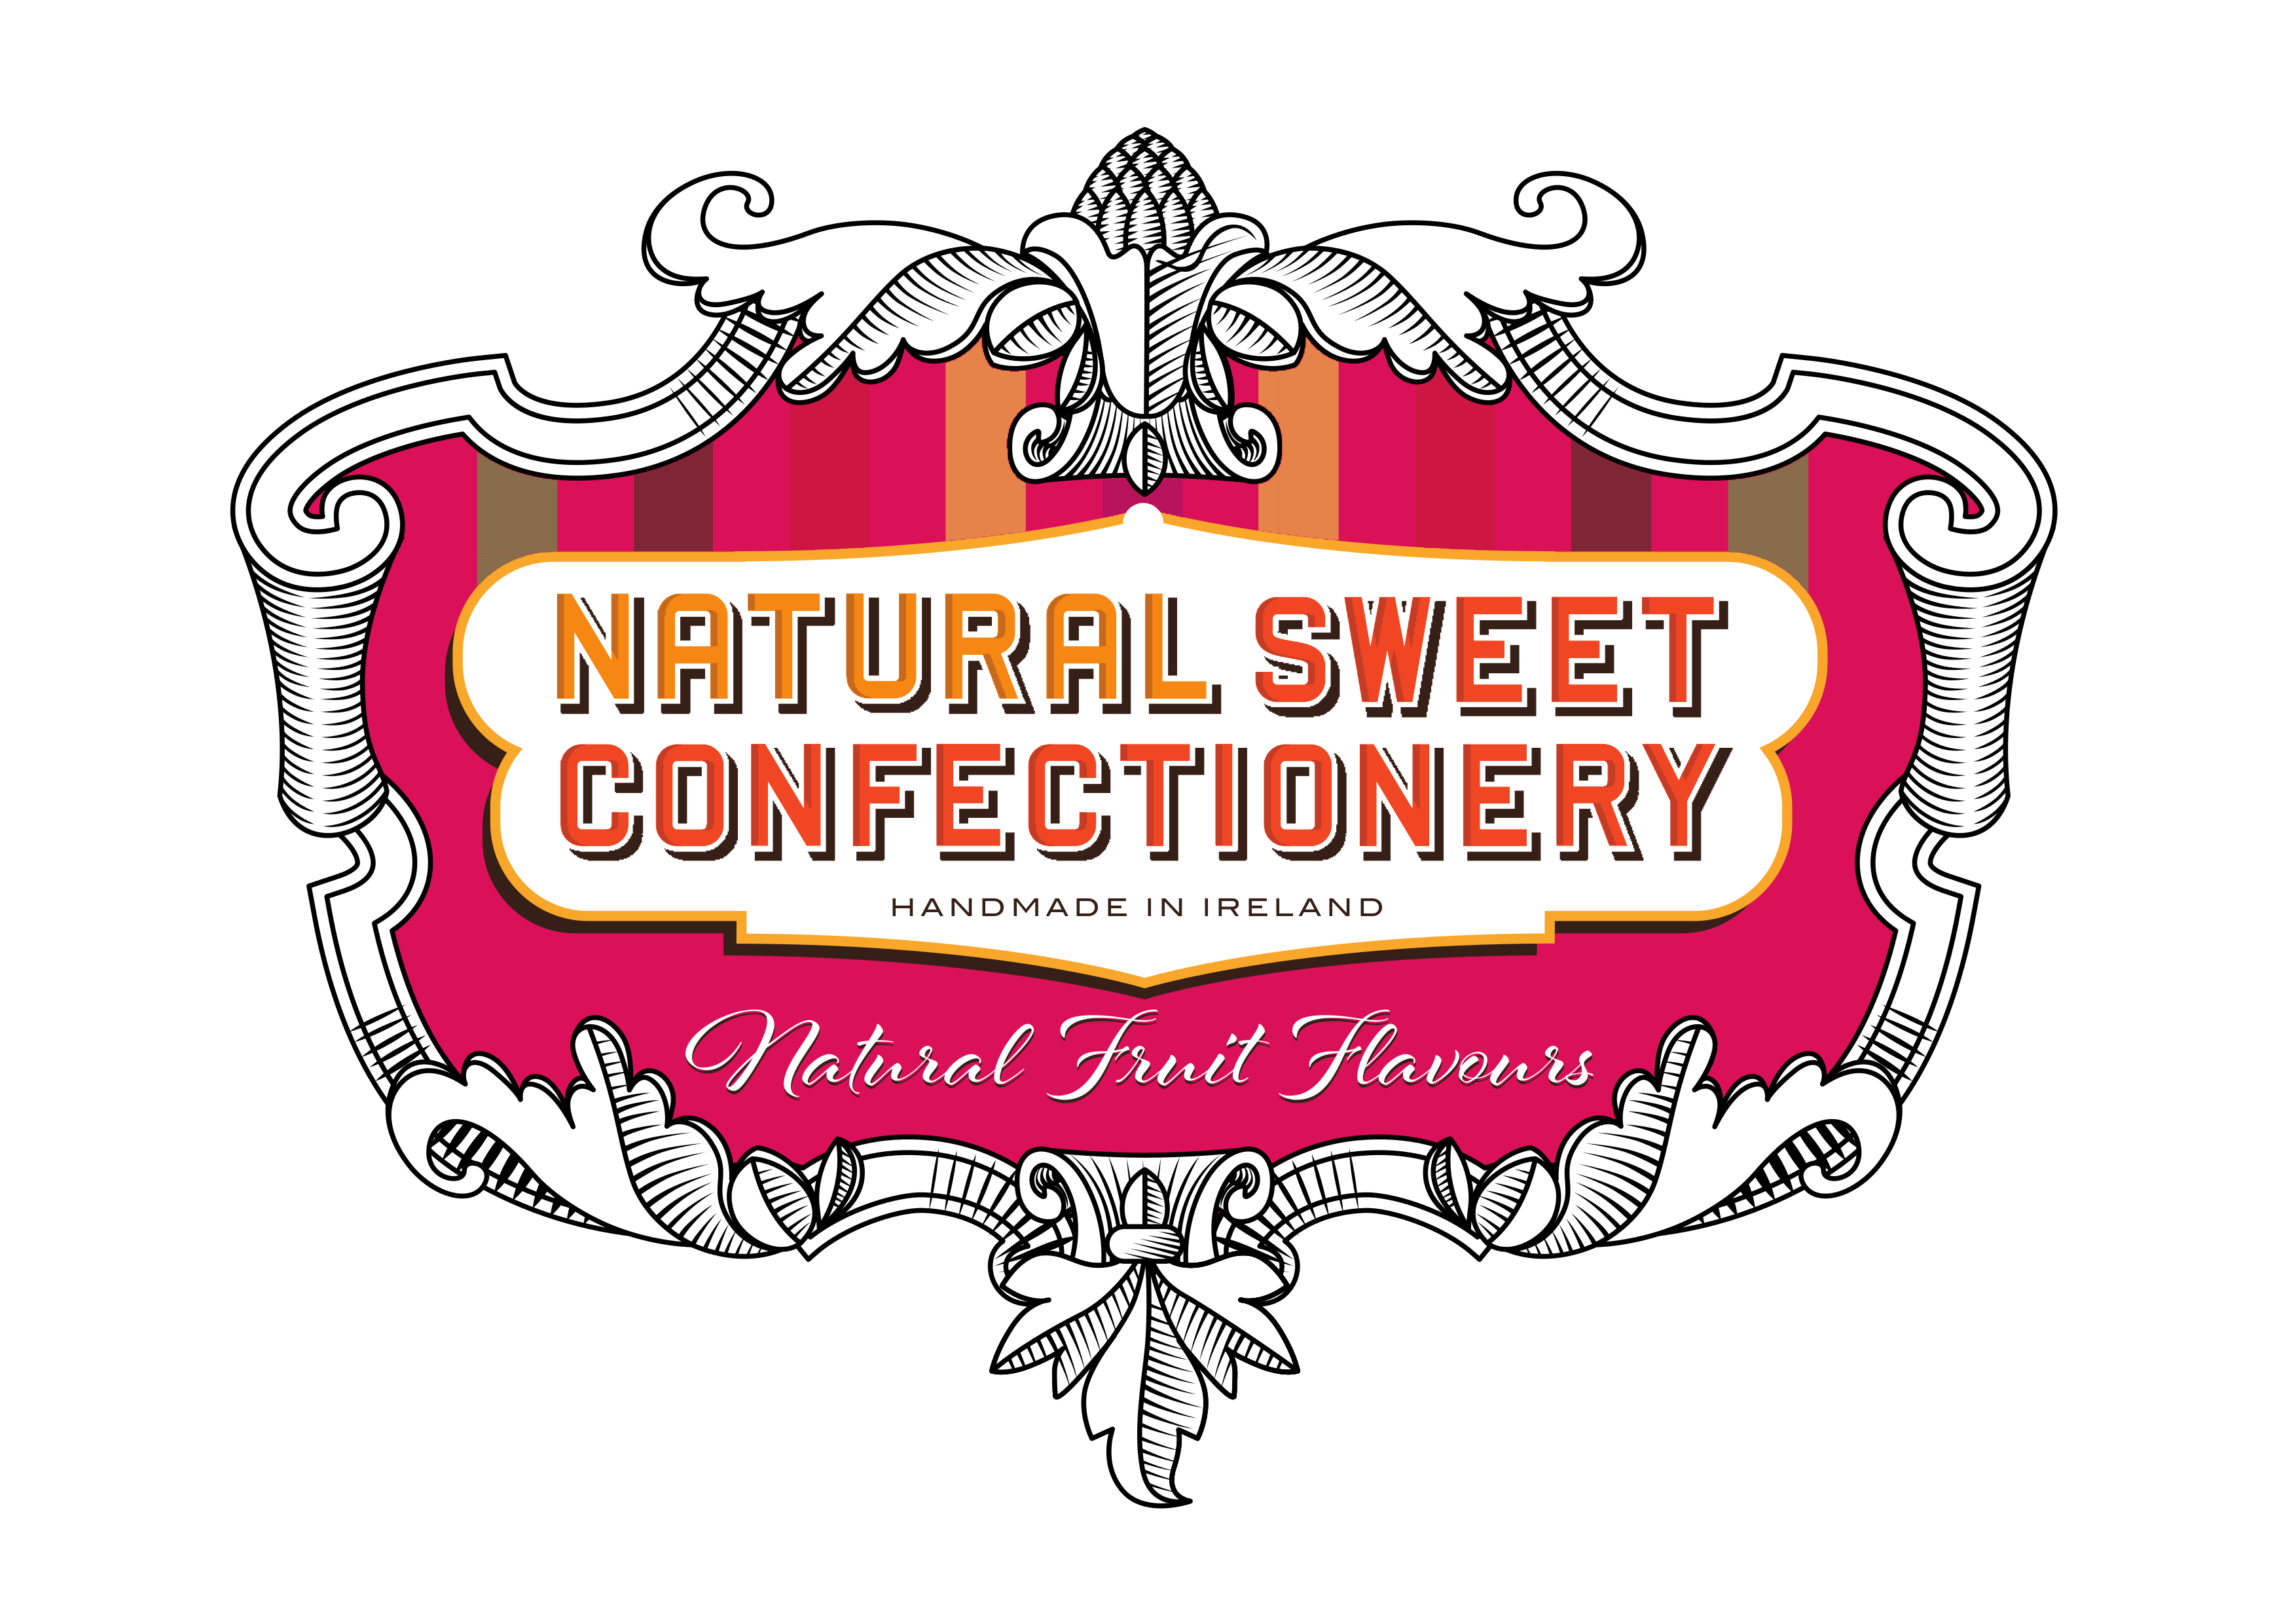 Natural Sweet Confectionery